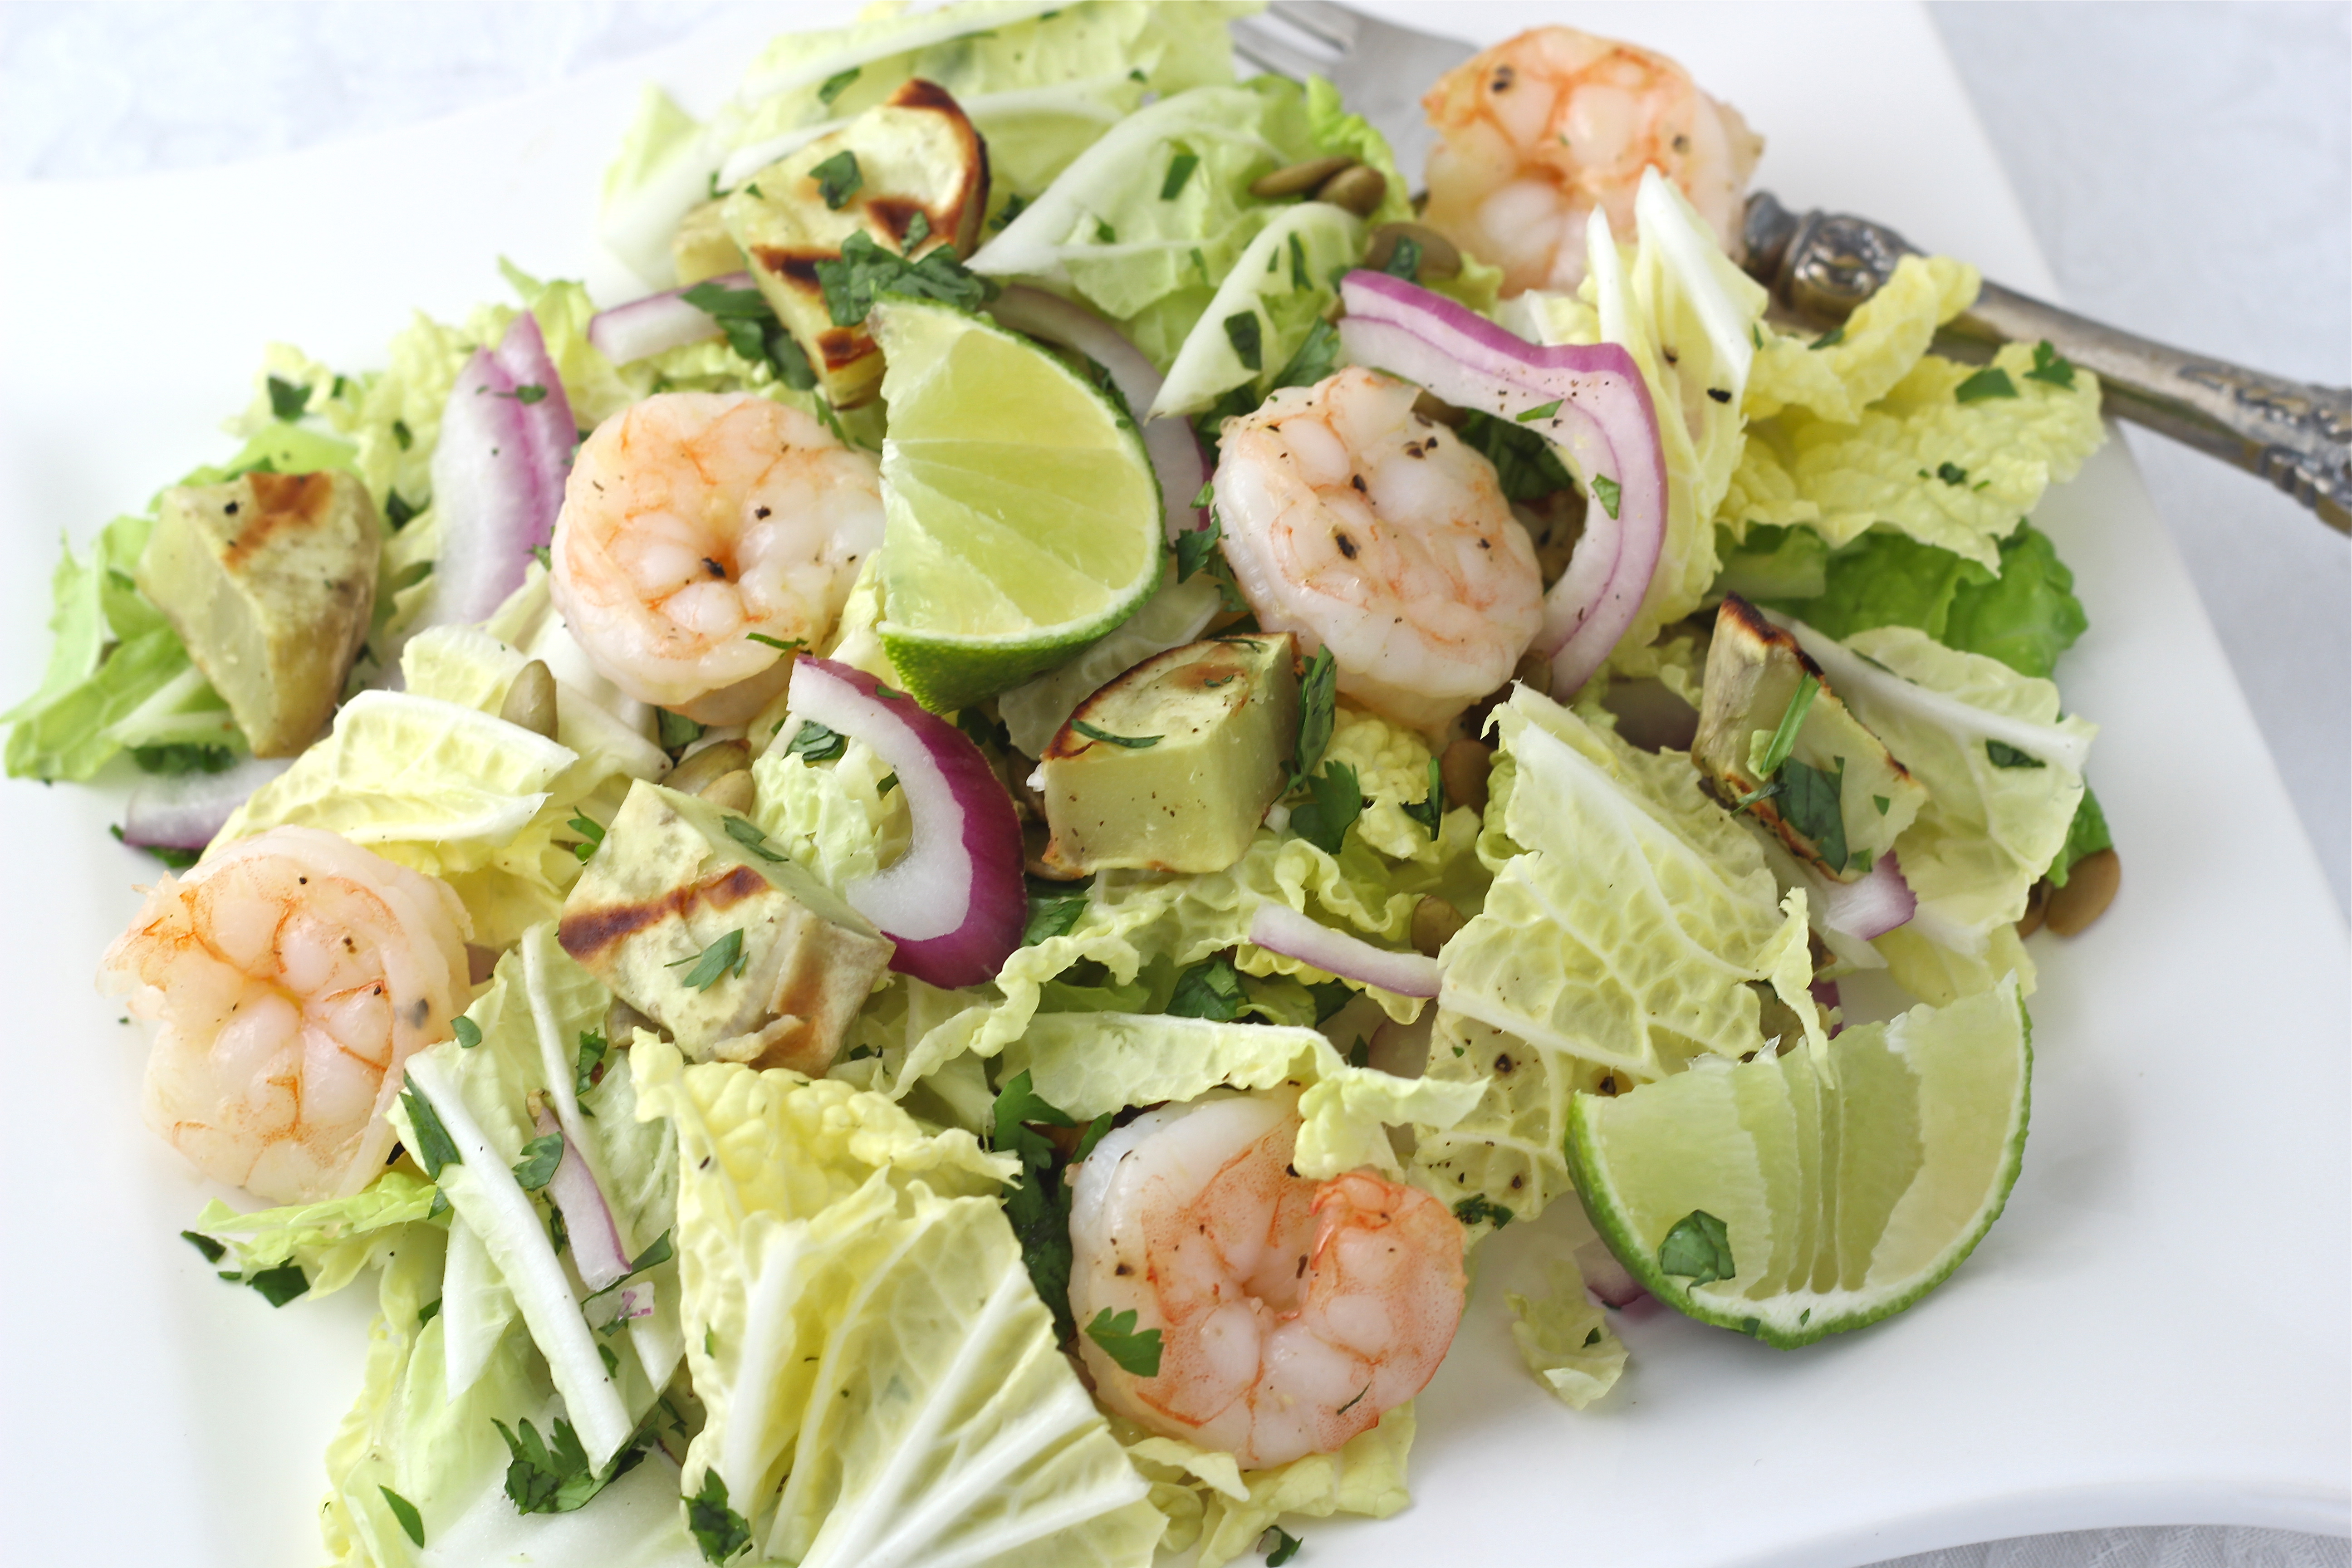 Grilled Sweet Potato and Shrimp Napa Cabbage Salad with Tangy Lime